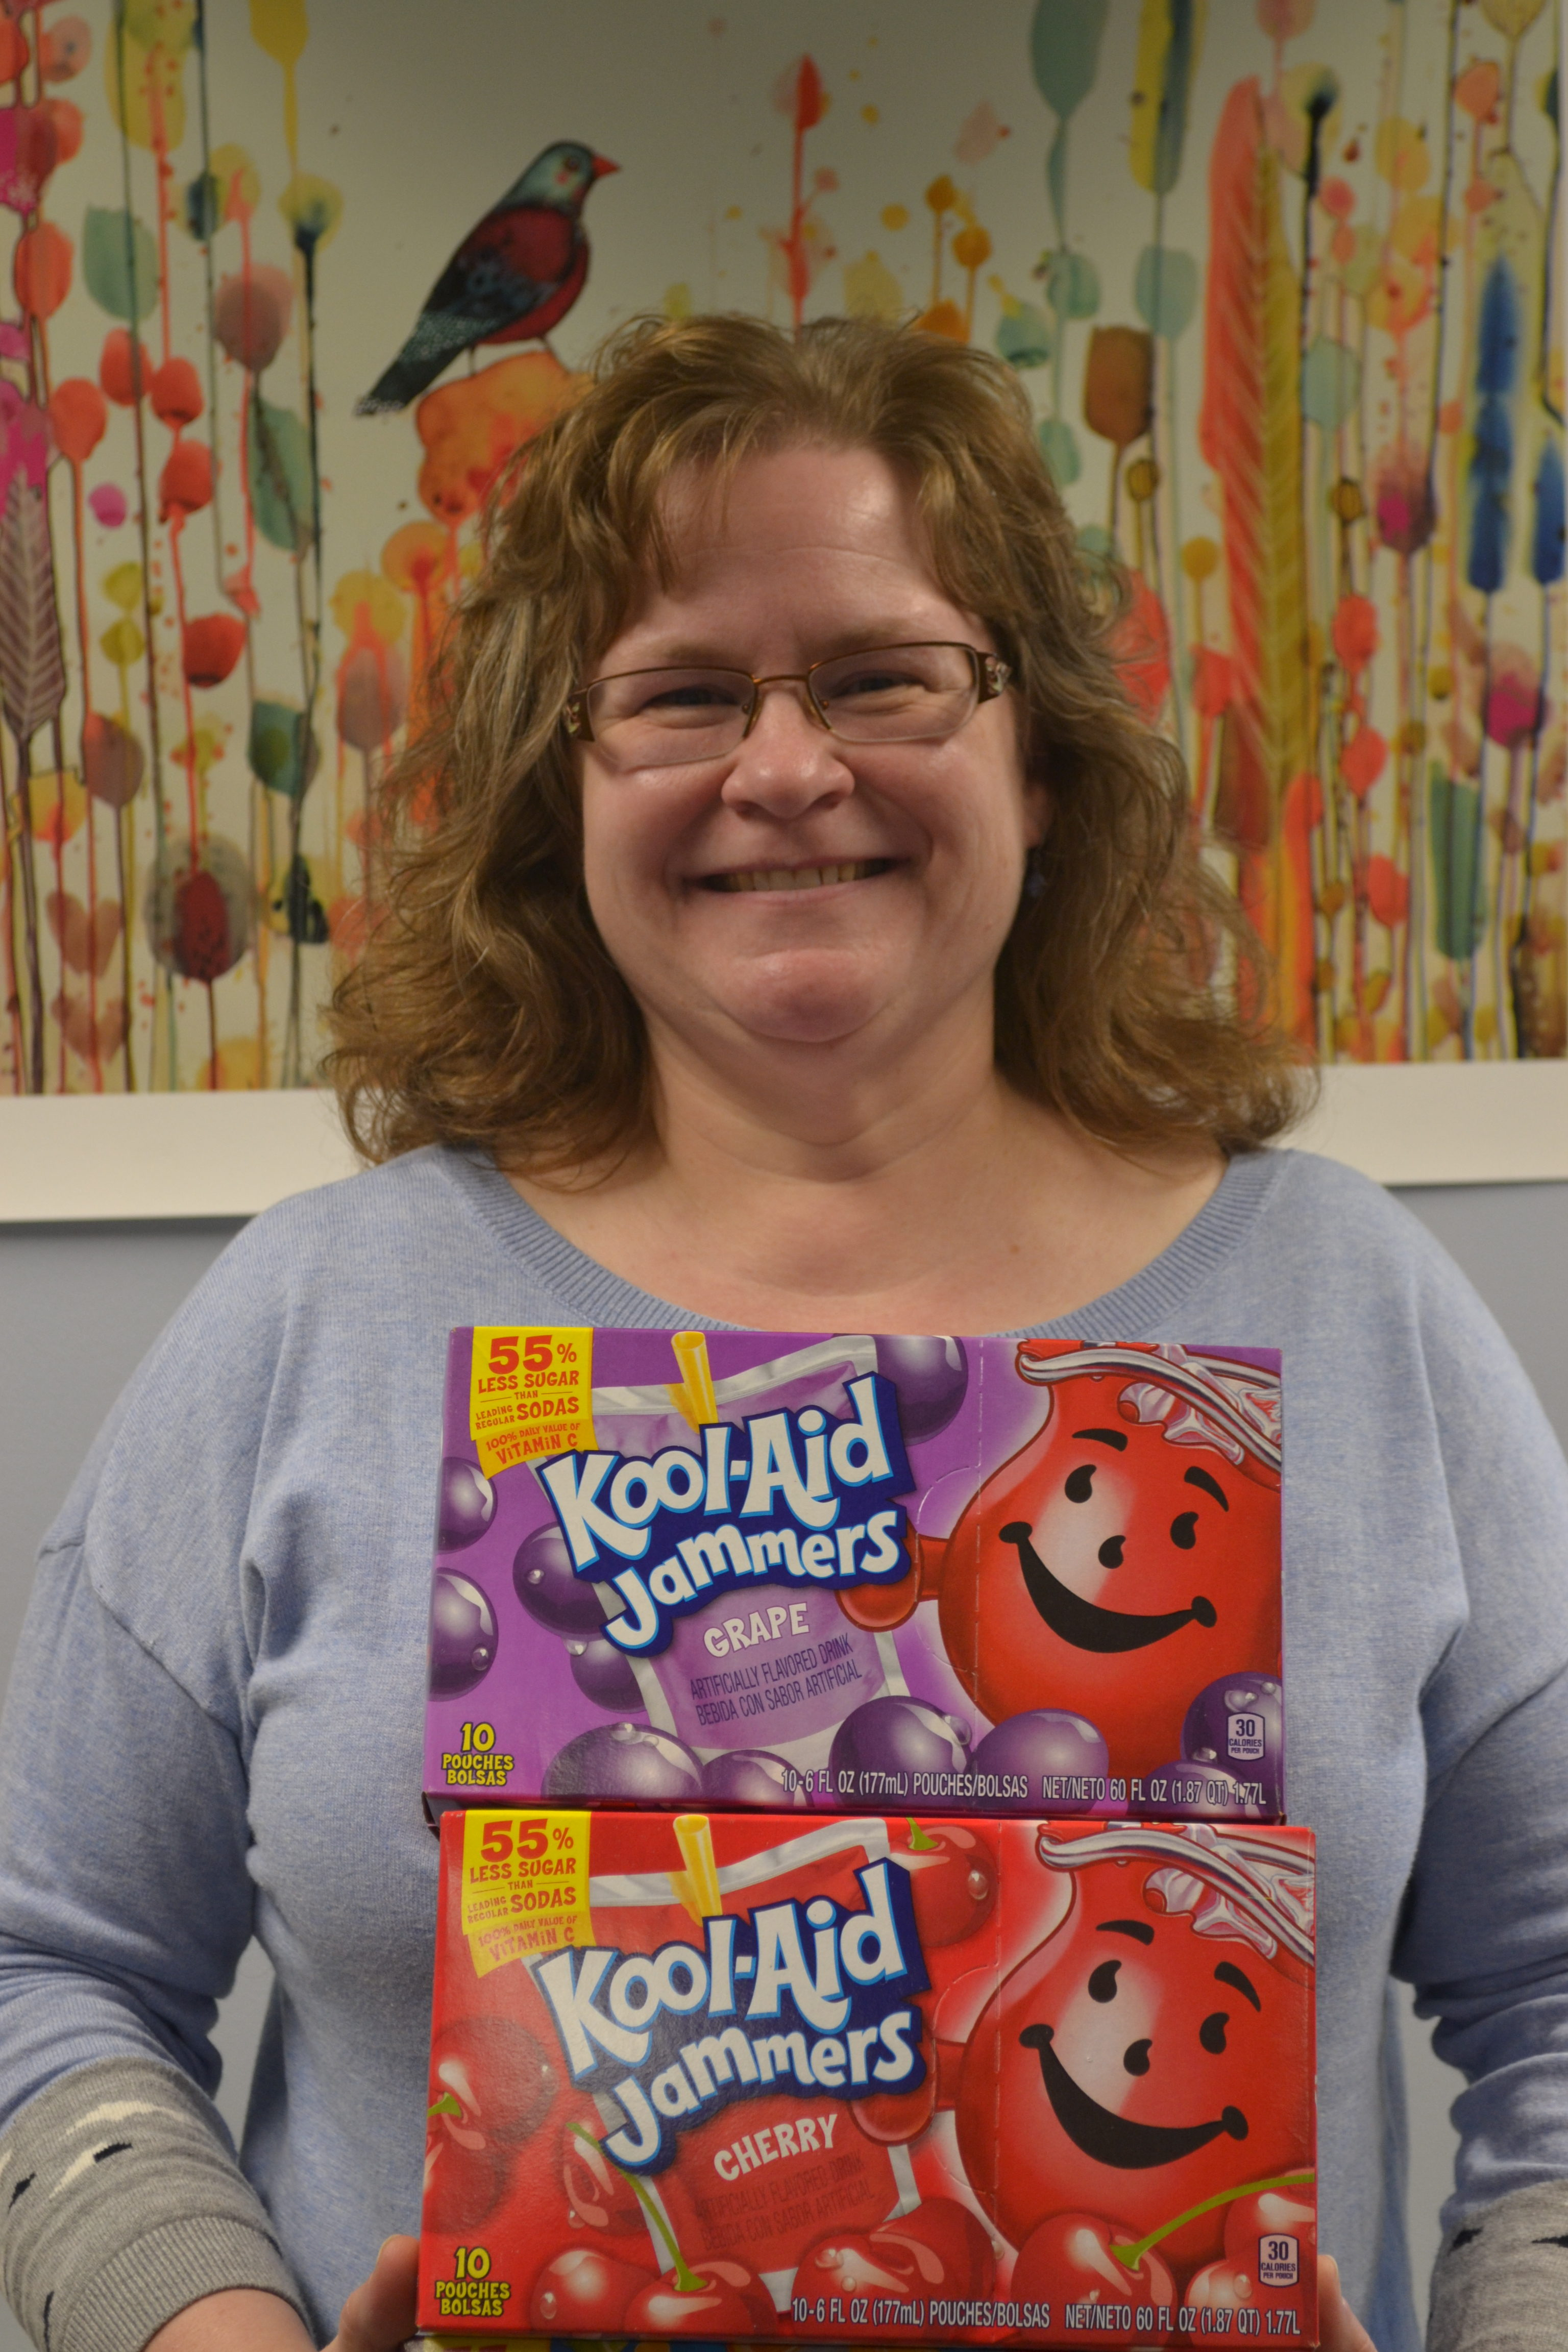 Kathleen Hunzer poses with several boxes of Kool-Aid.